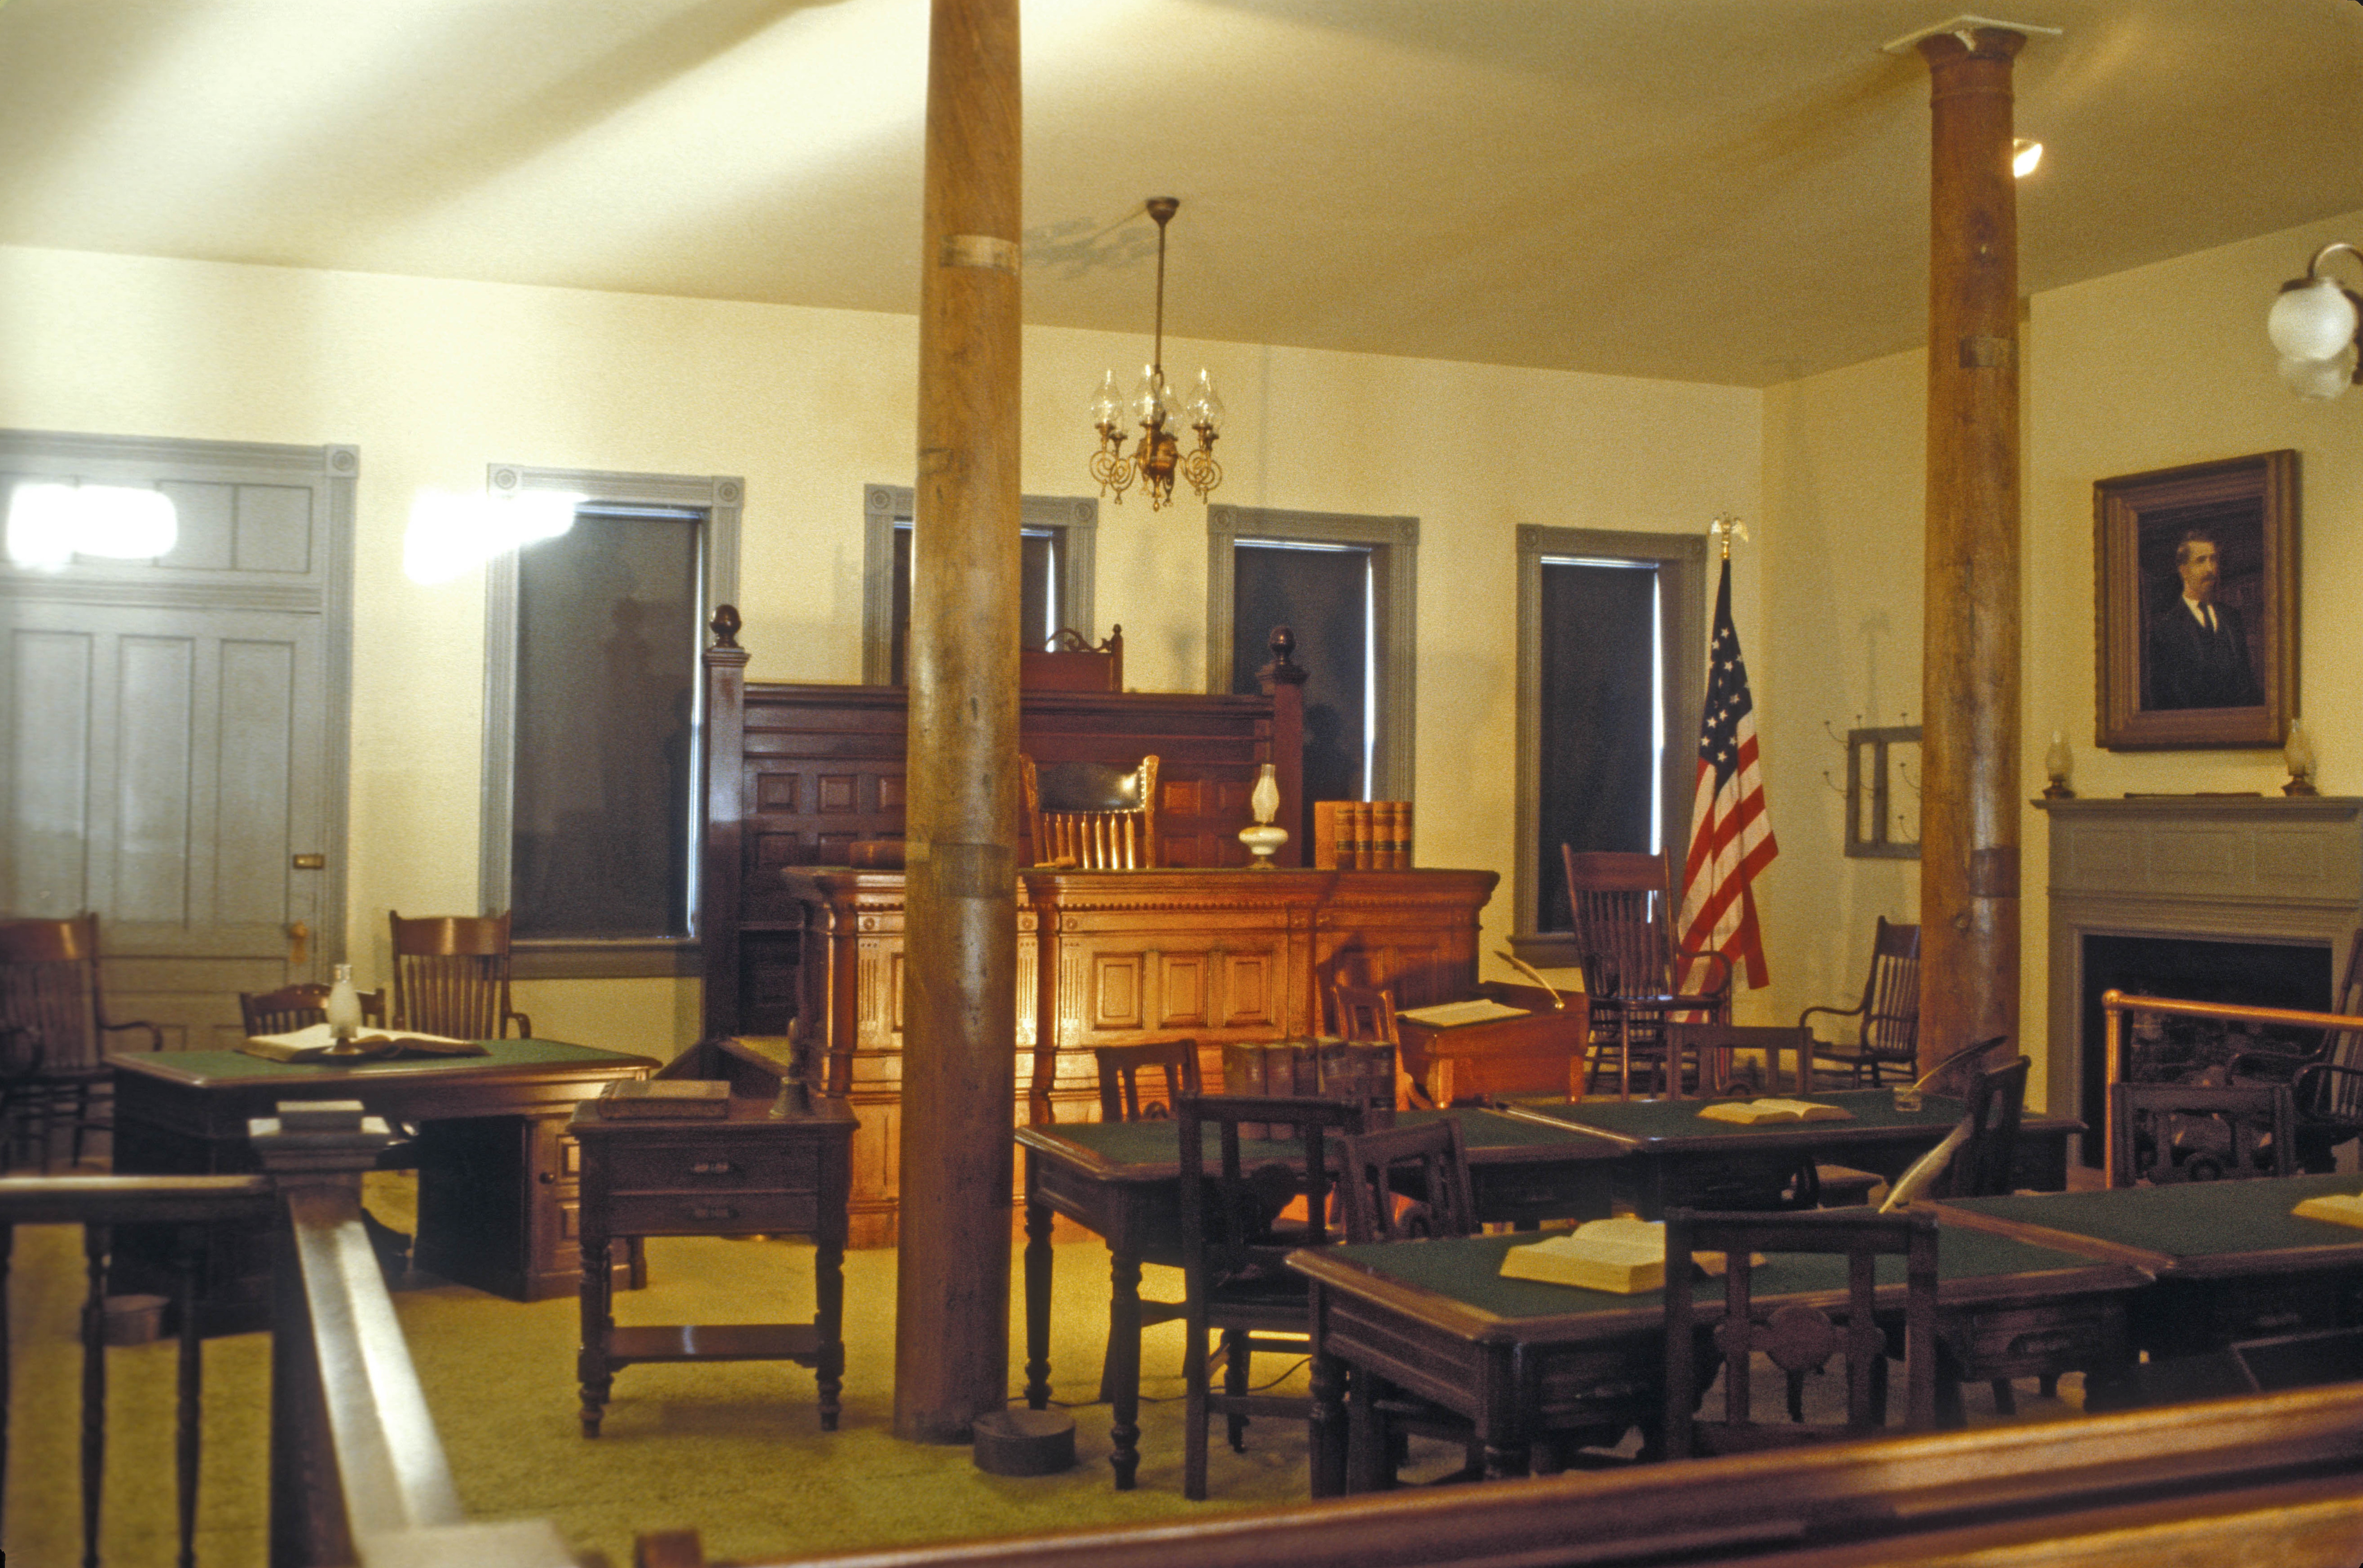 File:JUDGE PARKER'S COURTROOM.jpg - Wikimedia Commons